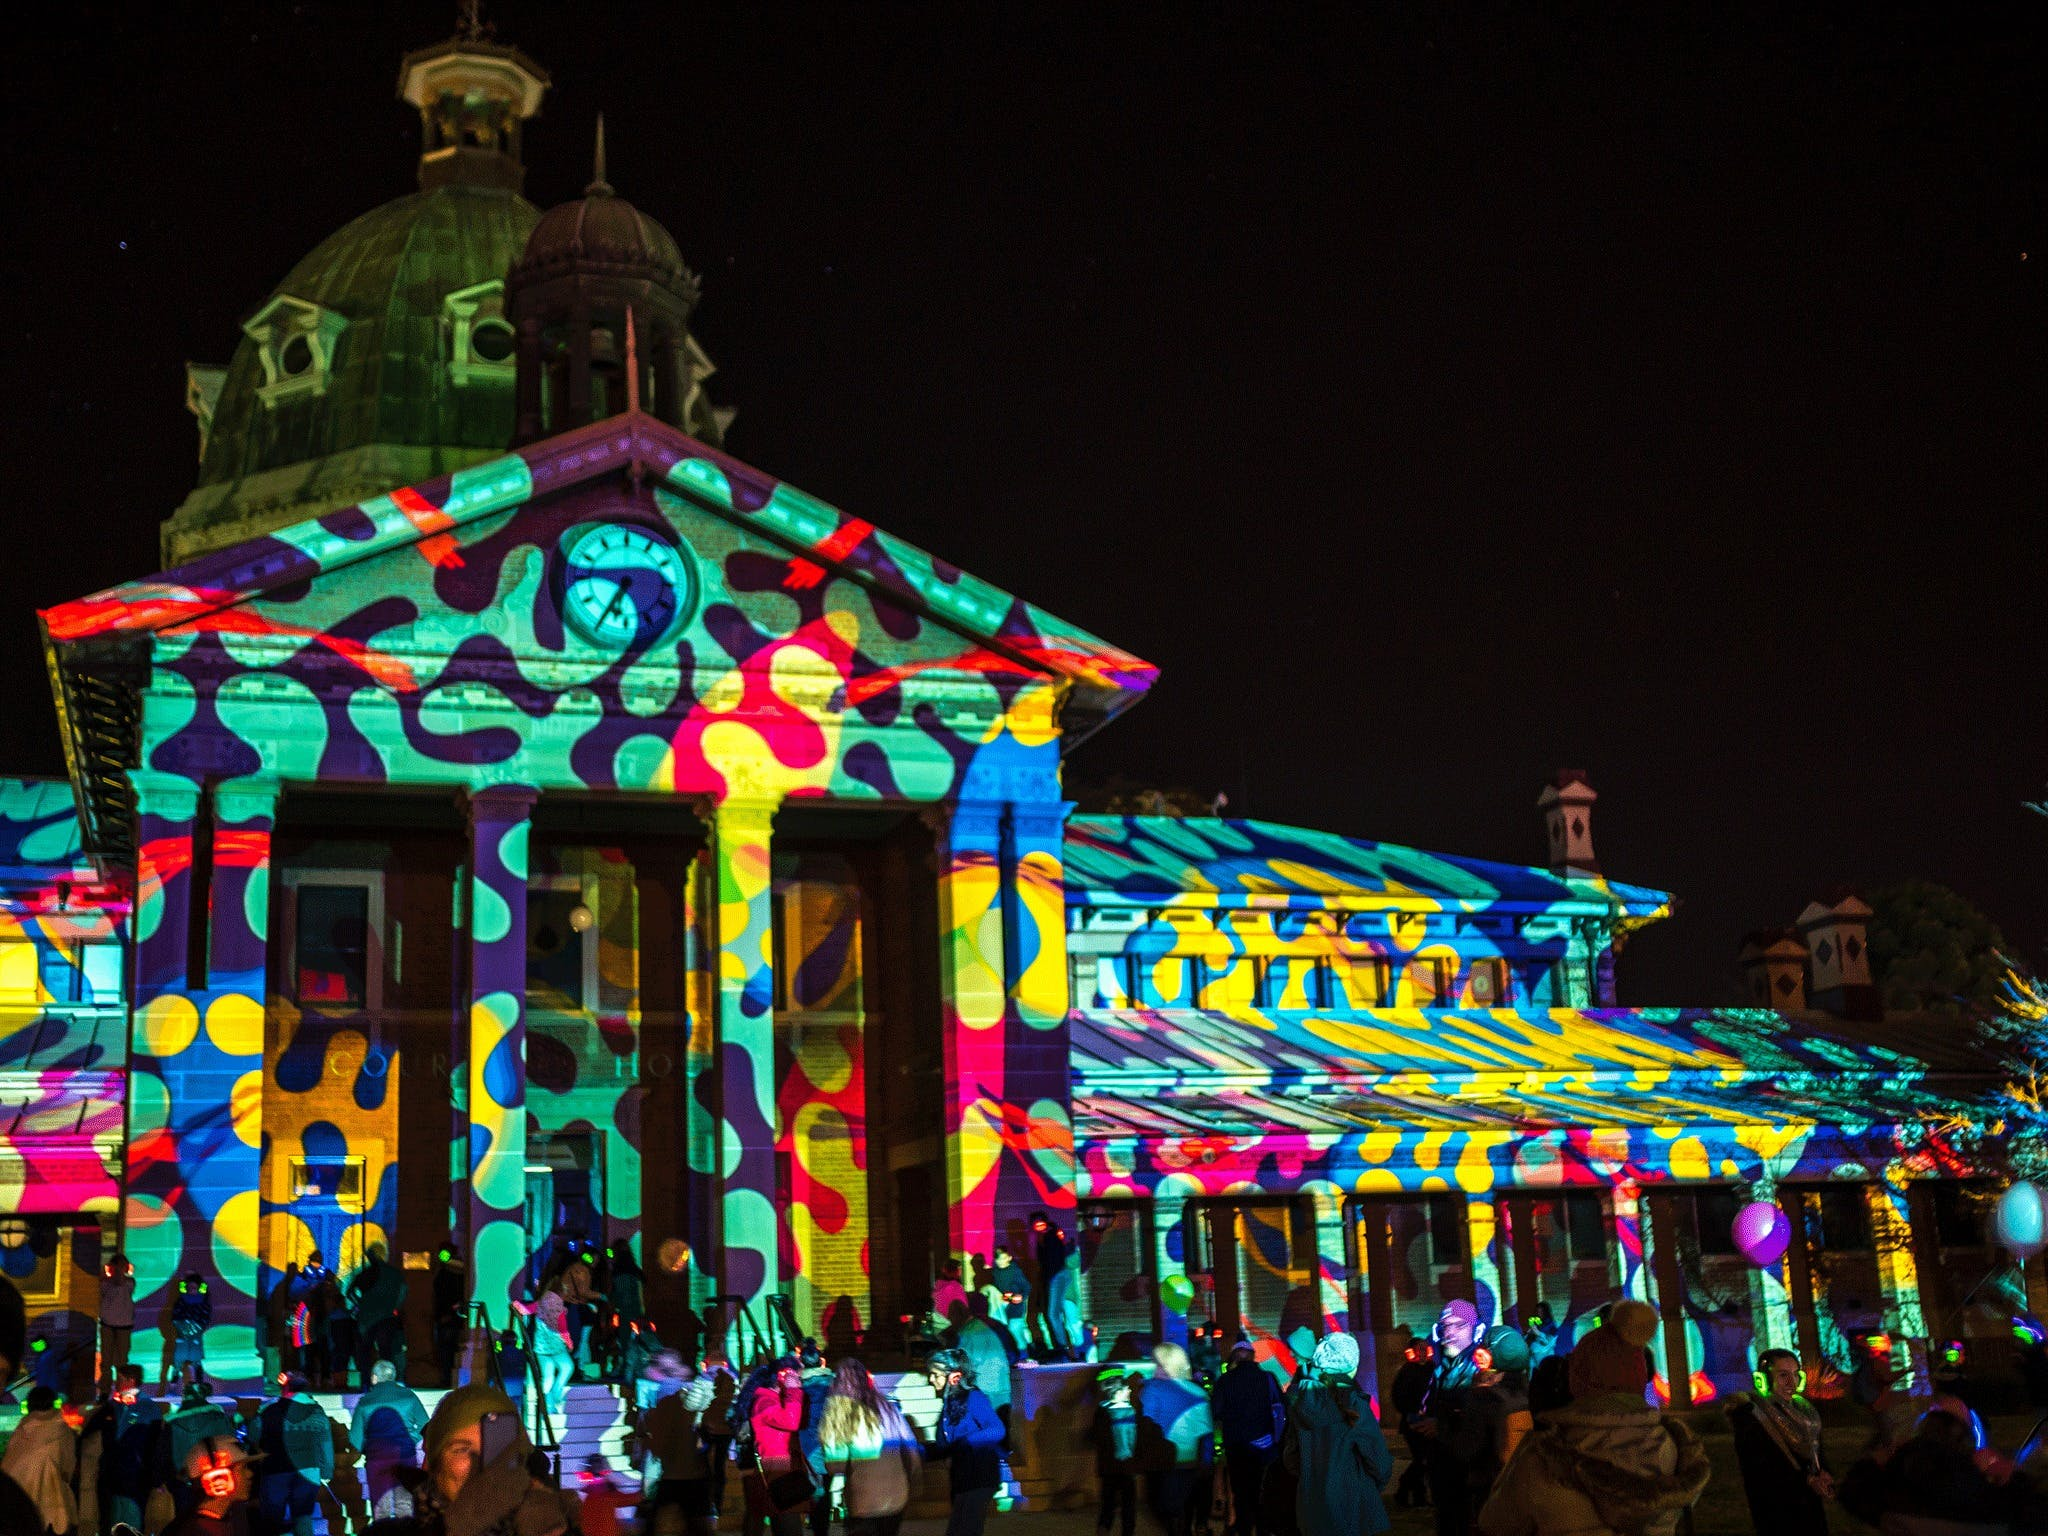 Bathurst Winter Festival - Sydney Tourism